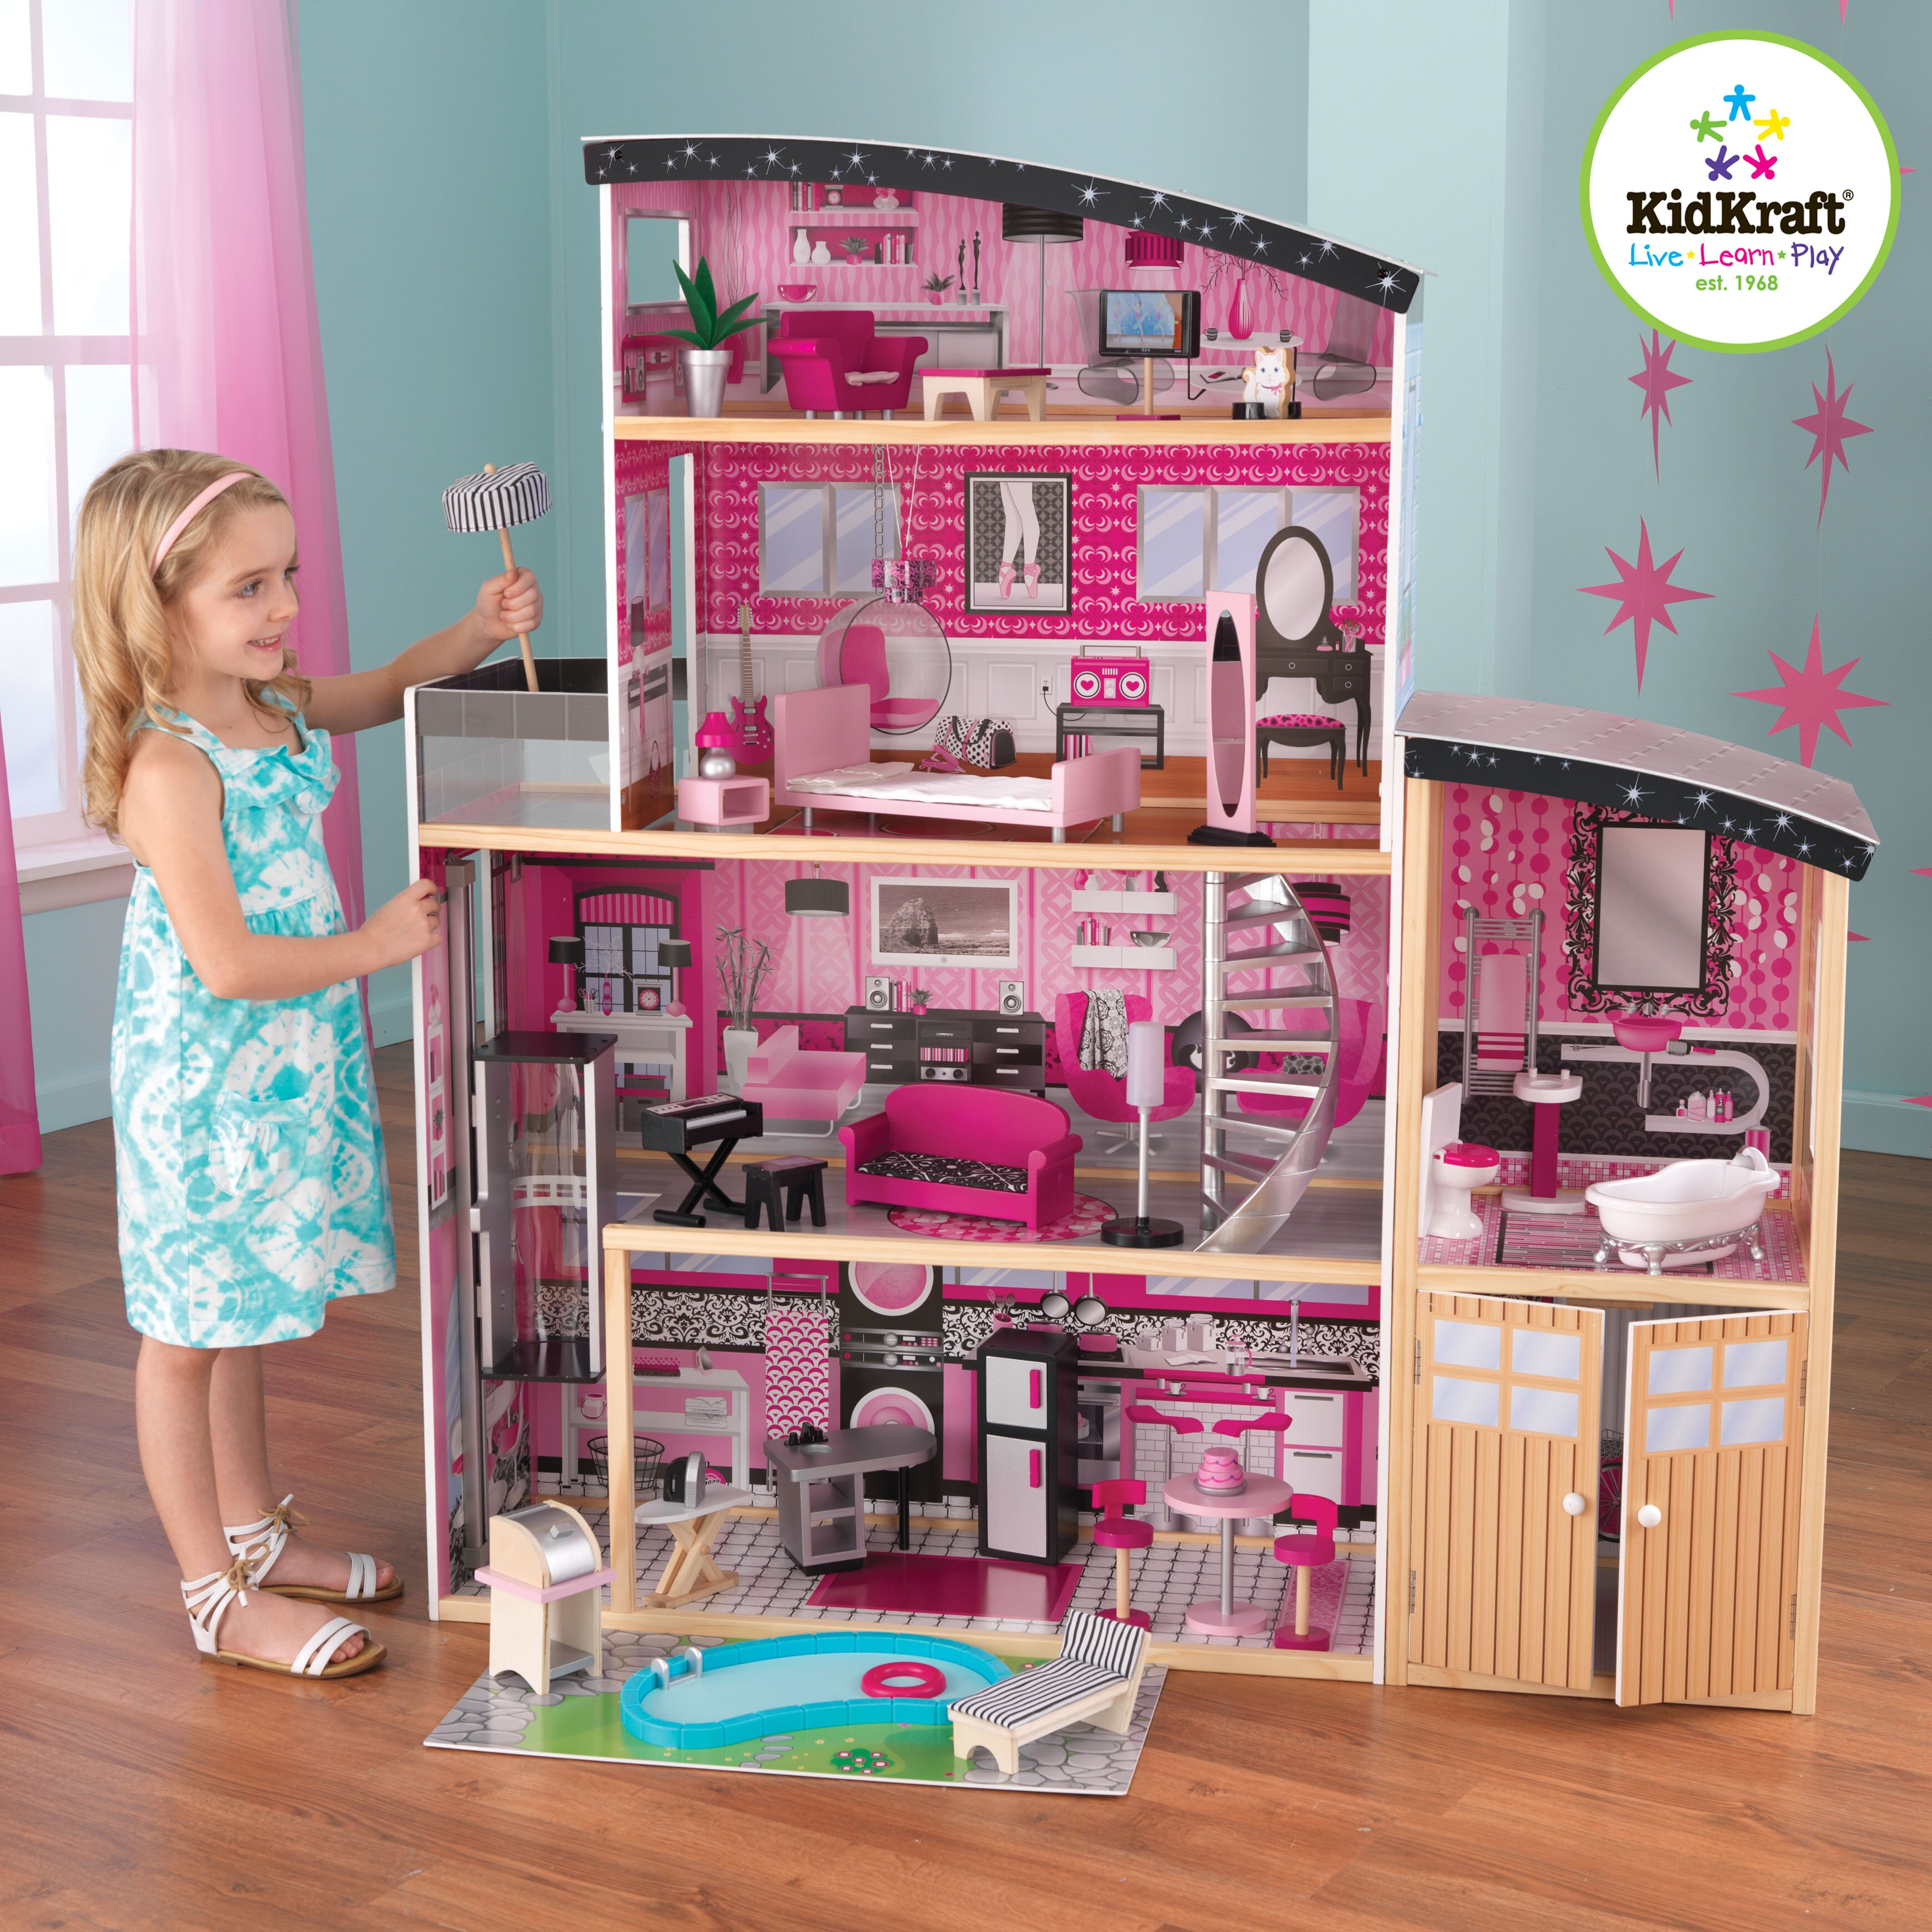 KidKraft Sparkle Mansion Dollhouse & eviews Wayfair - ^